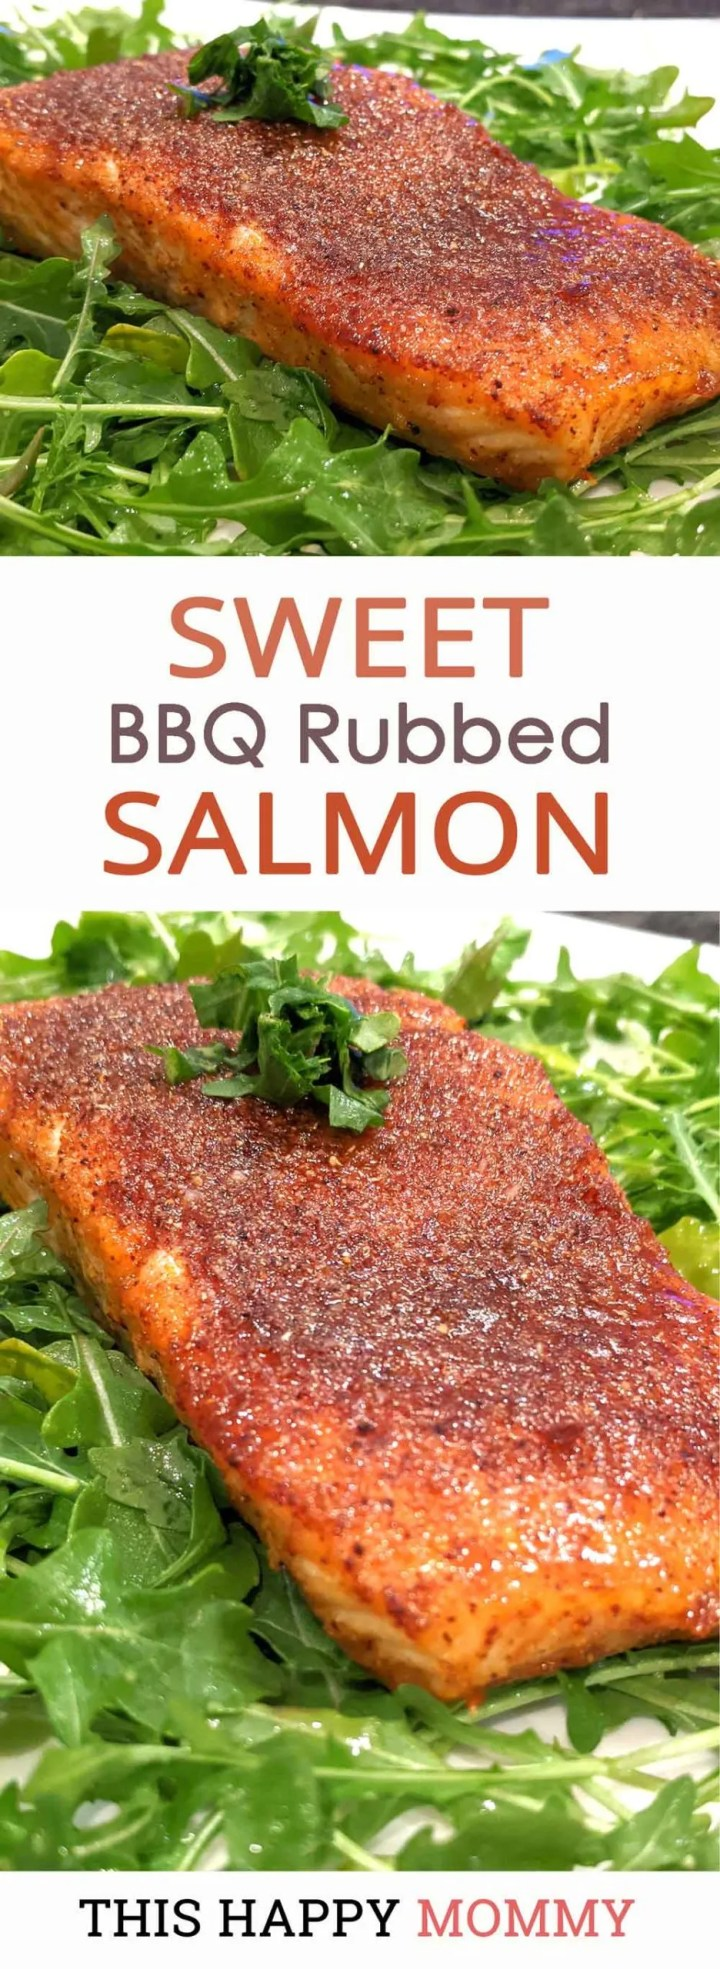 With Sweet BBQ Rubbed Salmon, you can enjoy all the flavours of the barbecue anytime of year. Rubbed with a tasty combination of sweet and savoury spices, this salmon is always a hit! | skinny salmon dinner | healthy baked salmon | #fish #salmon #dinner #recipe #easydinner | thishappymommy.com